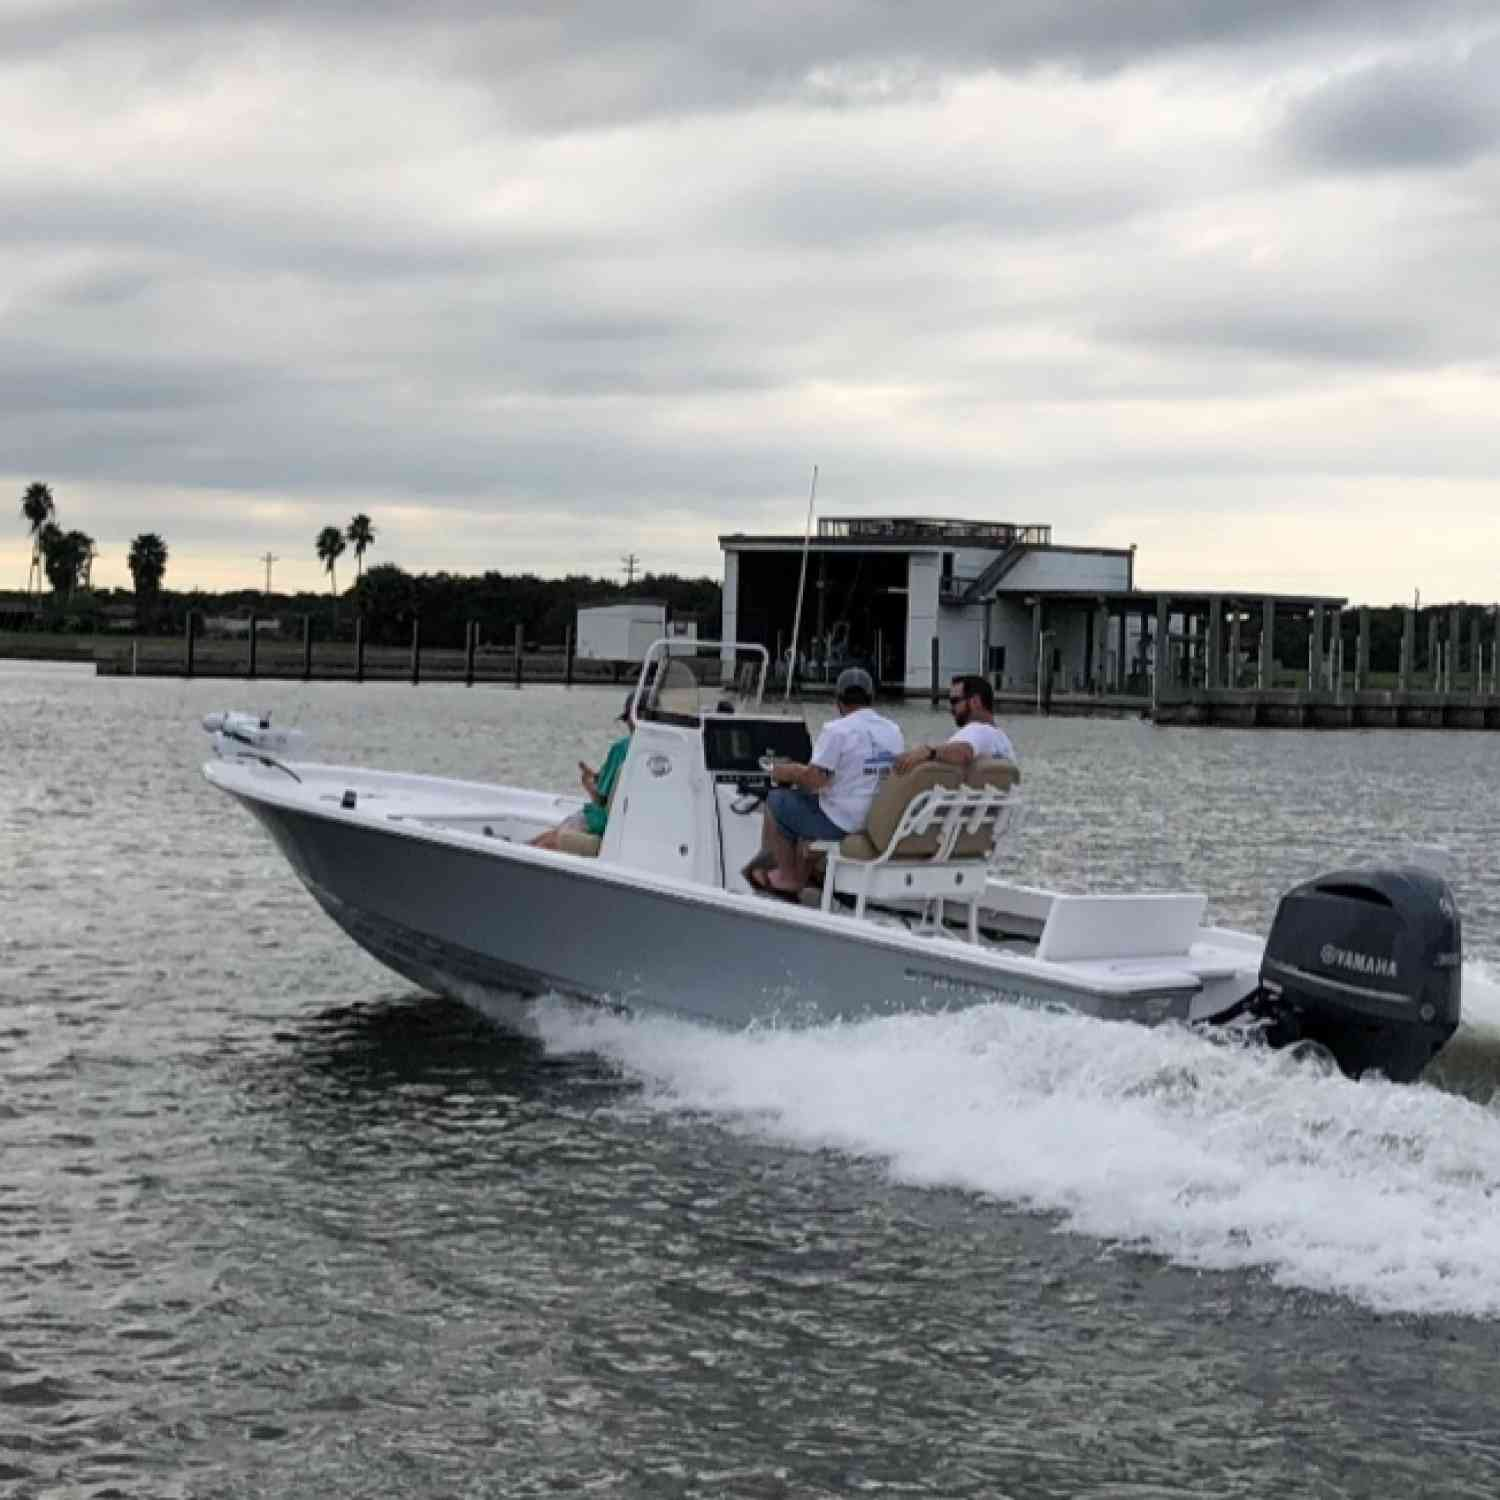 Title: POC Texas! Sportsman Boat Owners - On board their Sportsman Masters 247 Bay Boat - Location: POC, Texas. Participating in the Photo Contest #SportsmanFebruary2019